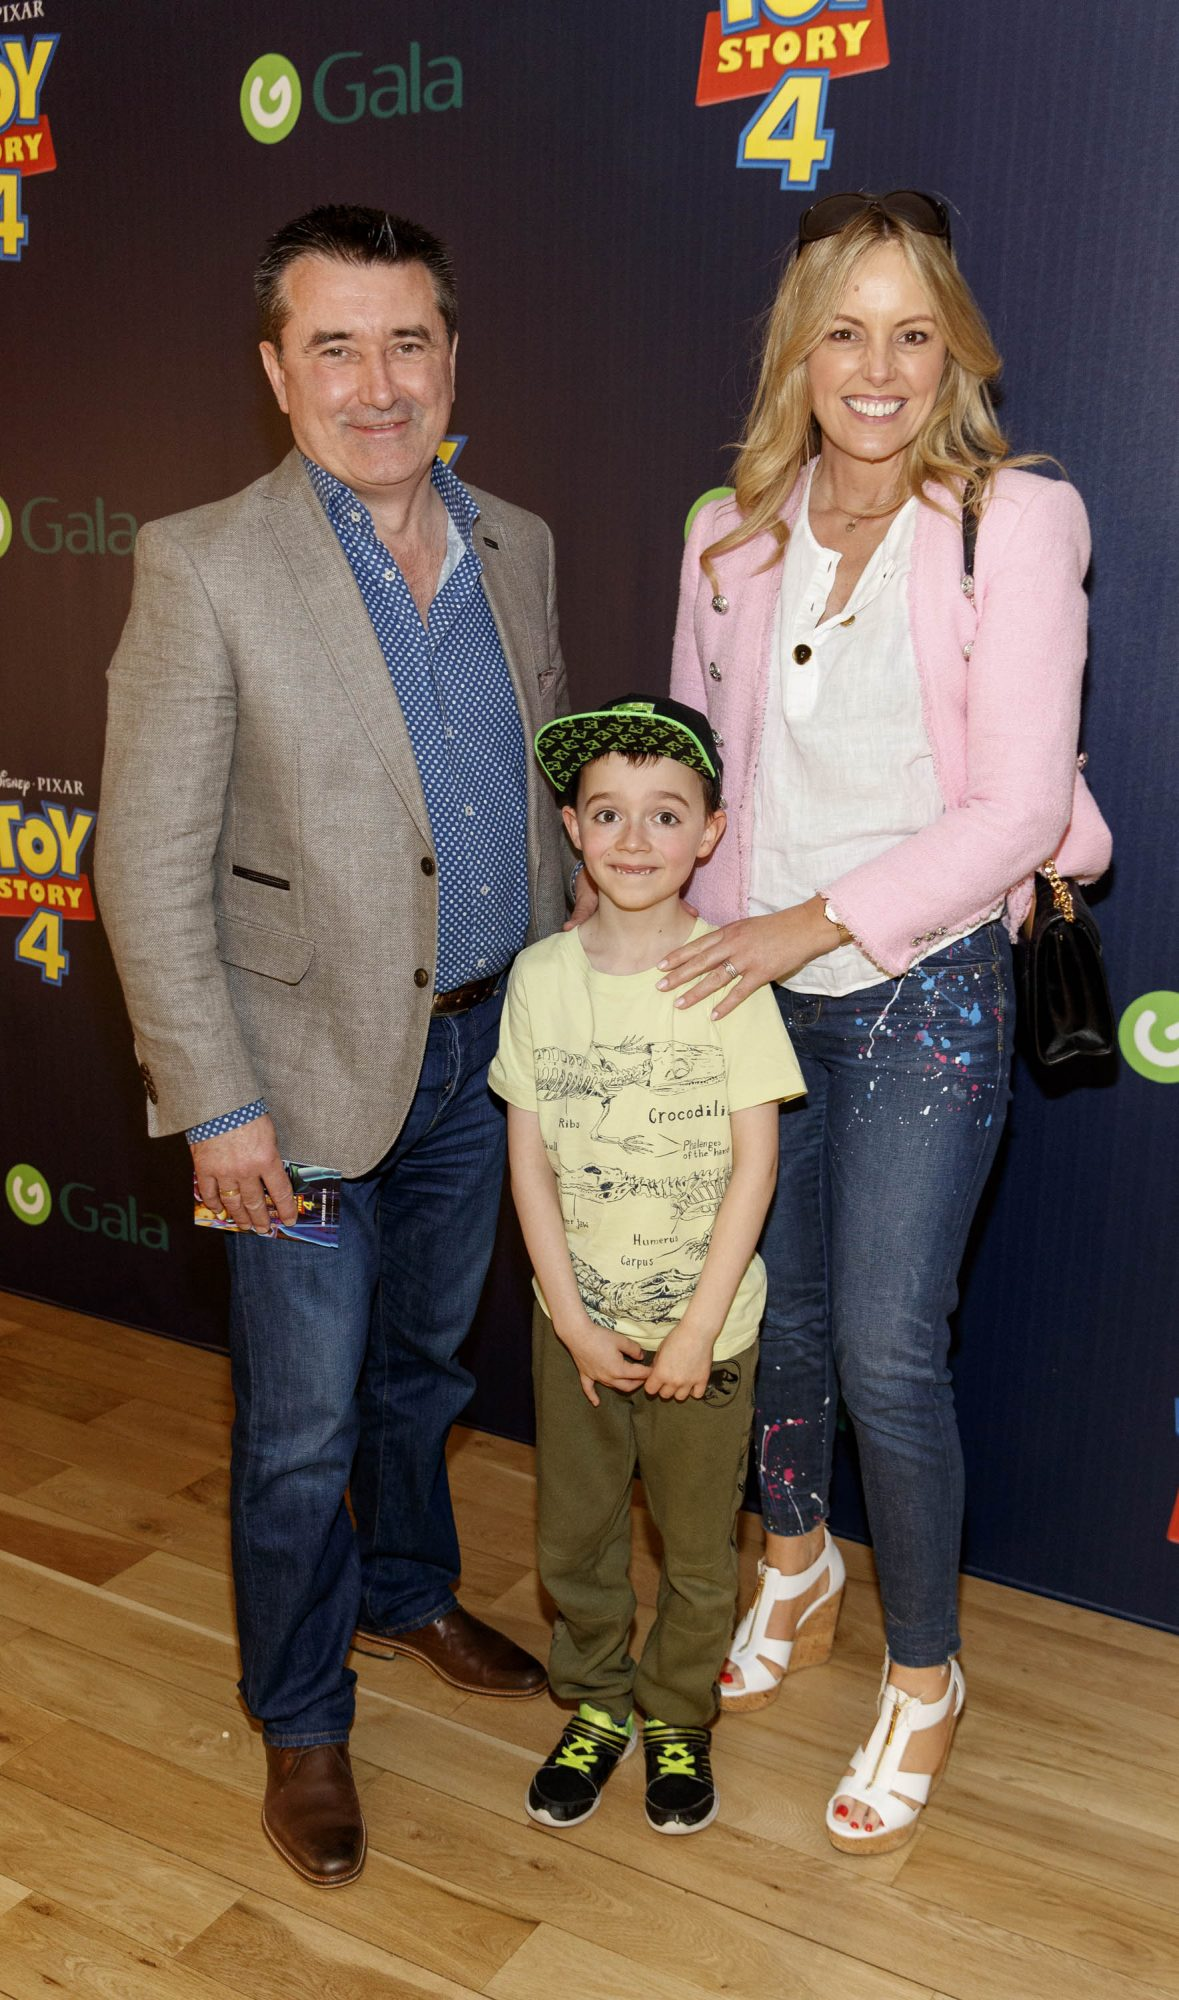 Glamorous gran Jenny McCarthy pictured with grandson Aaron and huband Martin King at the special event screening of Disney Pixar's TOY STORY 4 in the Light House Cinema Dublin. Picture: Andres Poveda